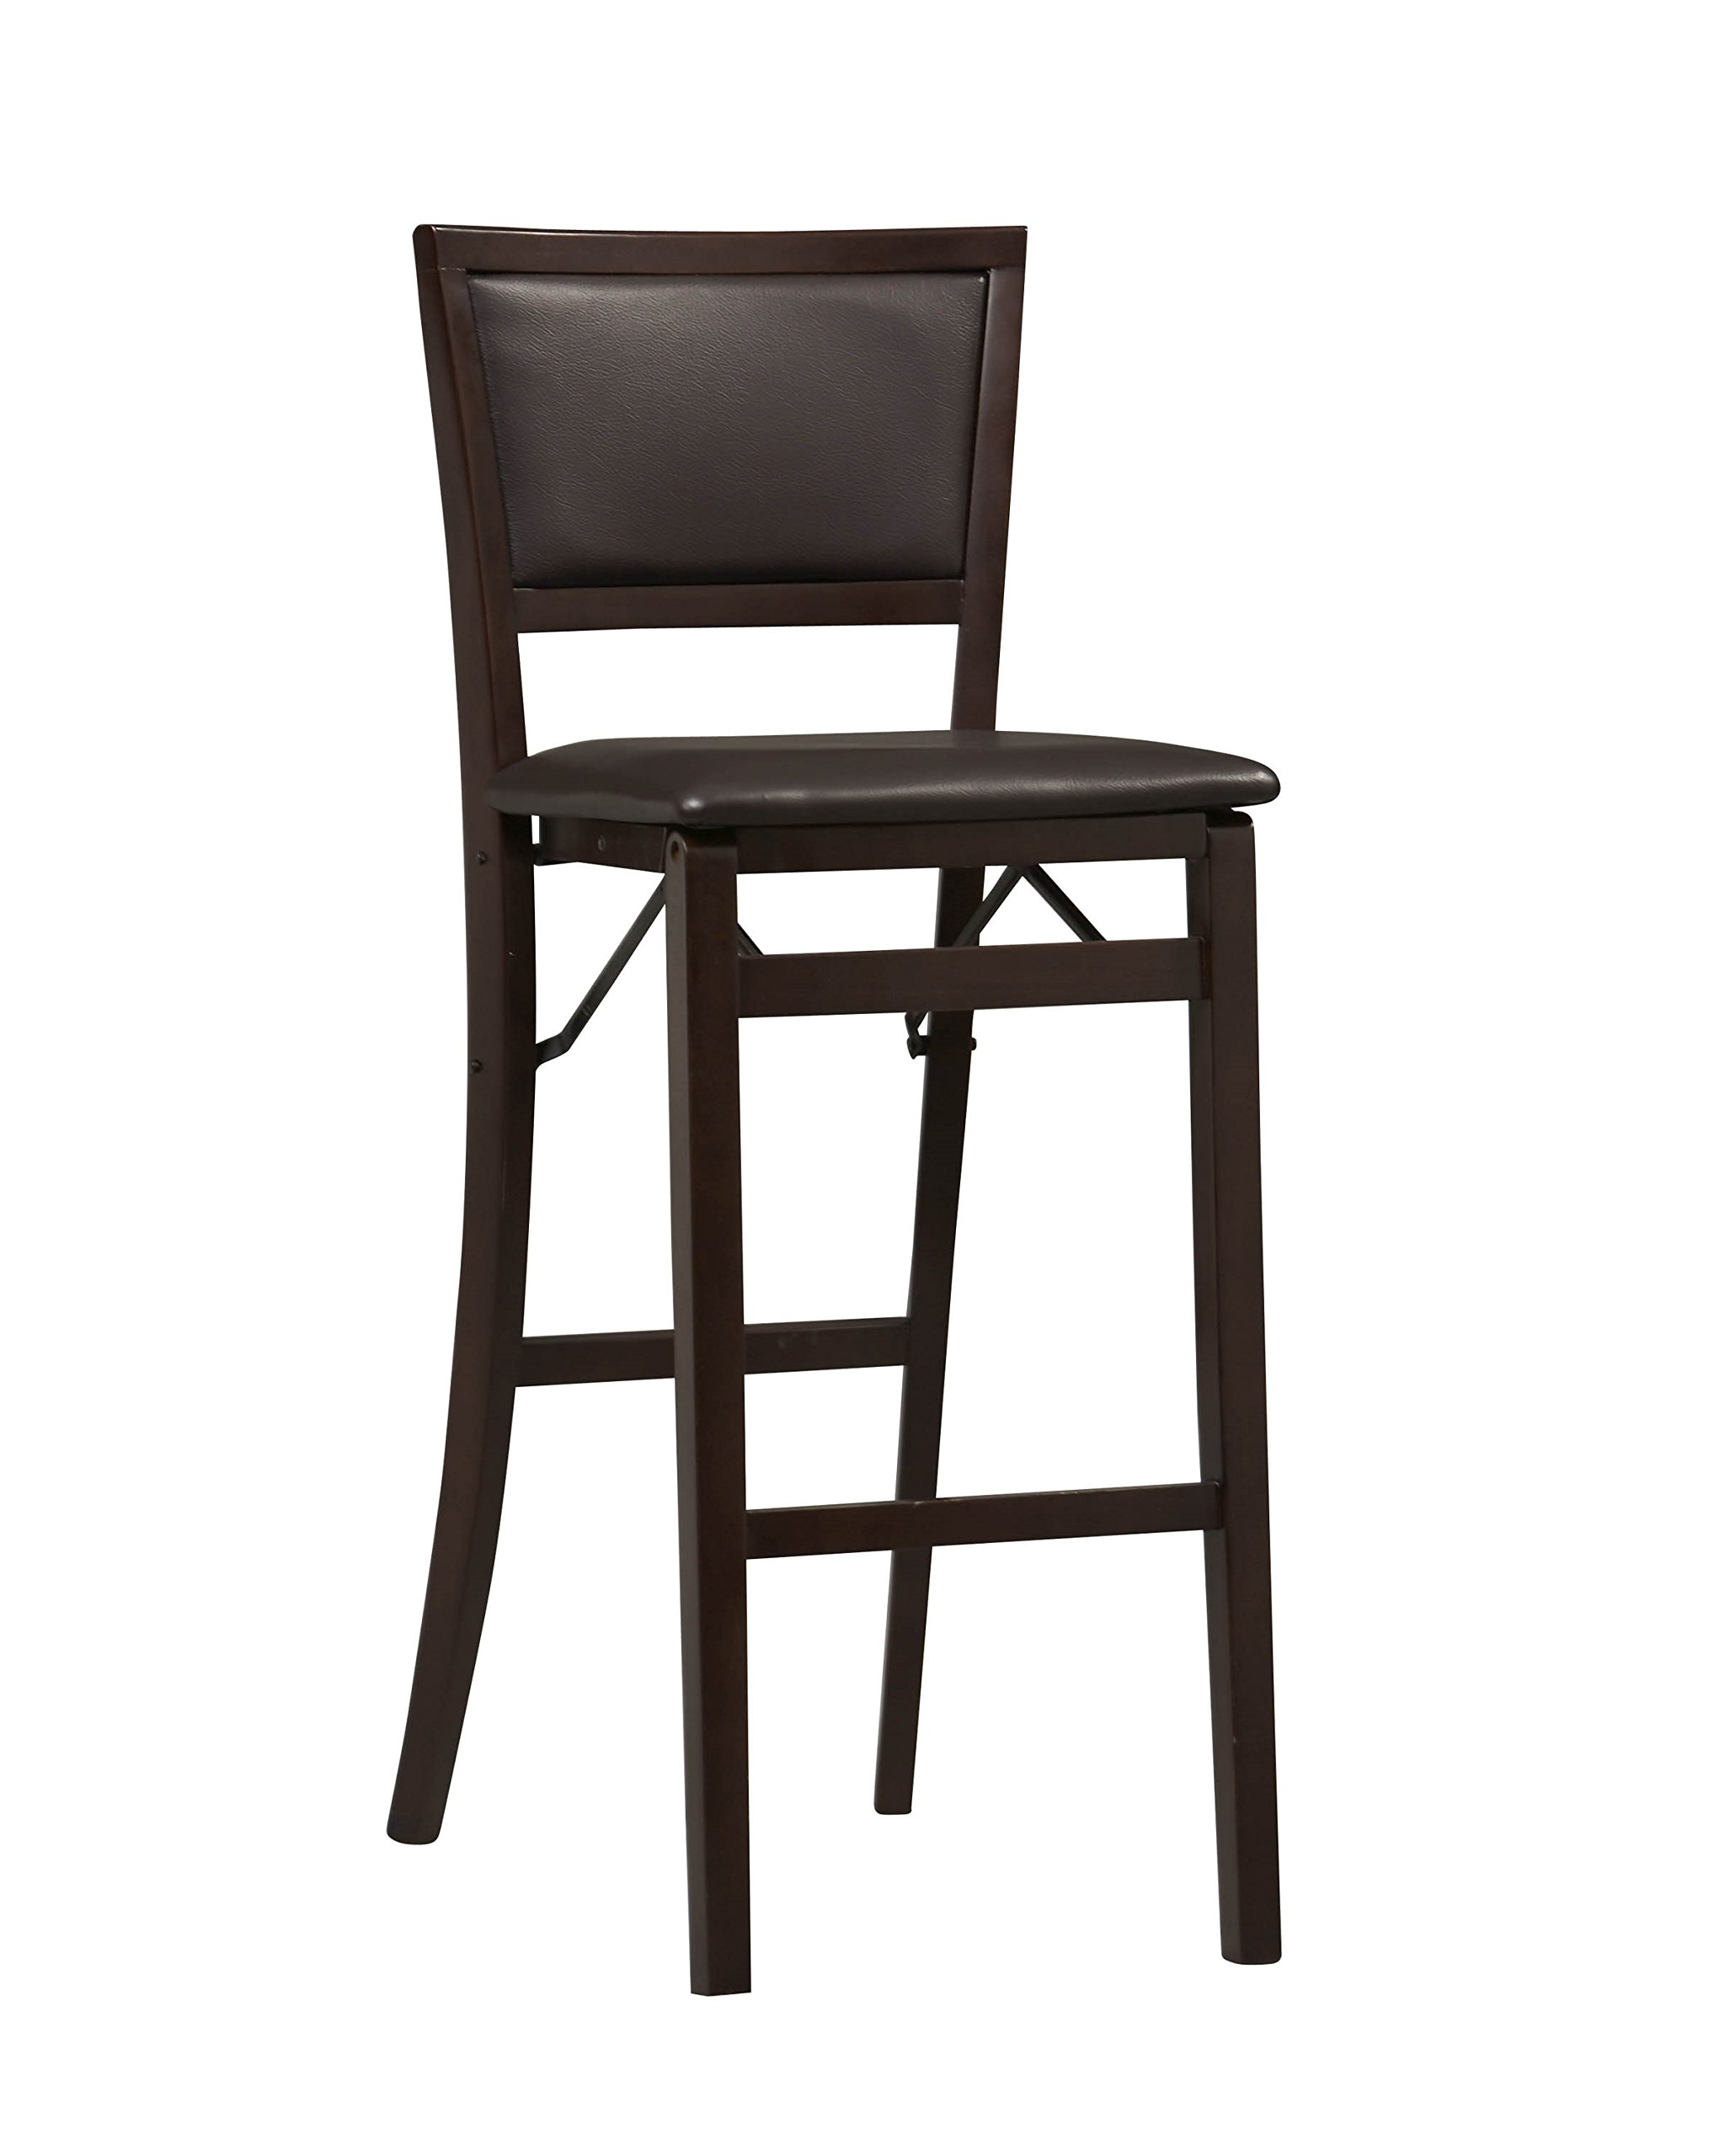 Linon Keira Pad Back Folding Bar Stool by Linon (Image #1)